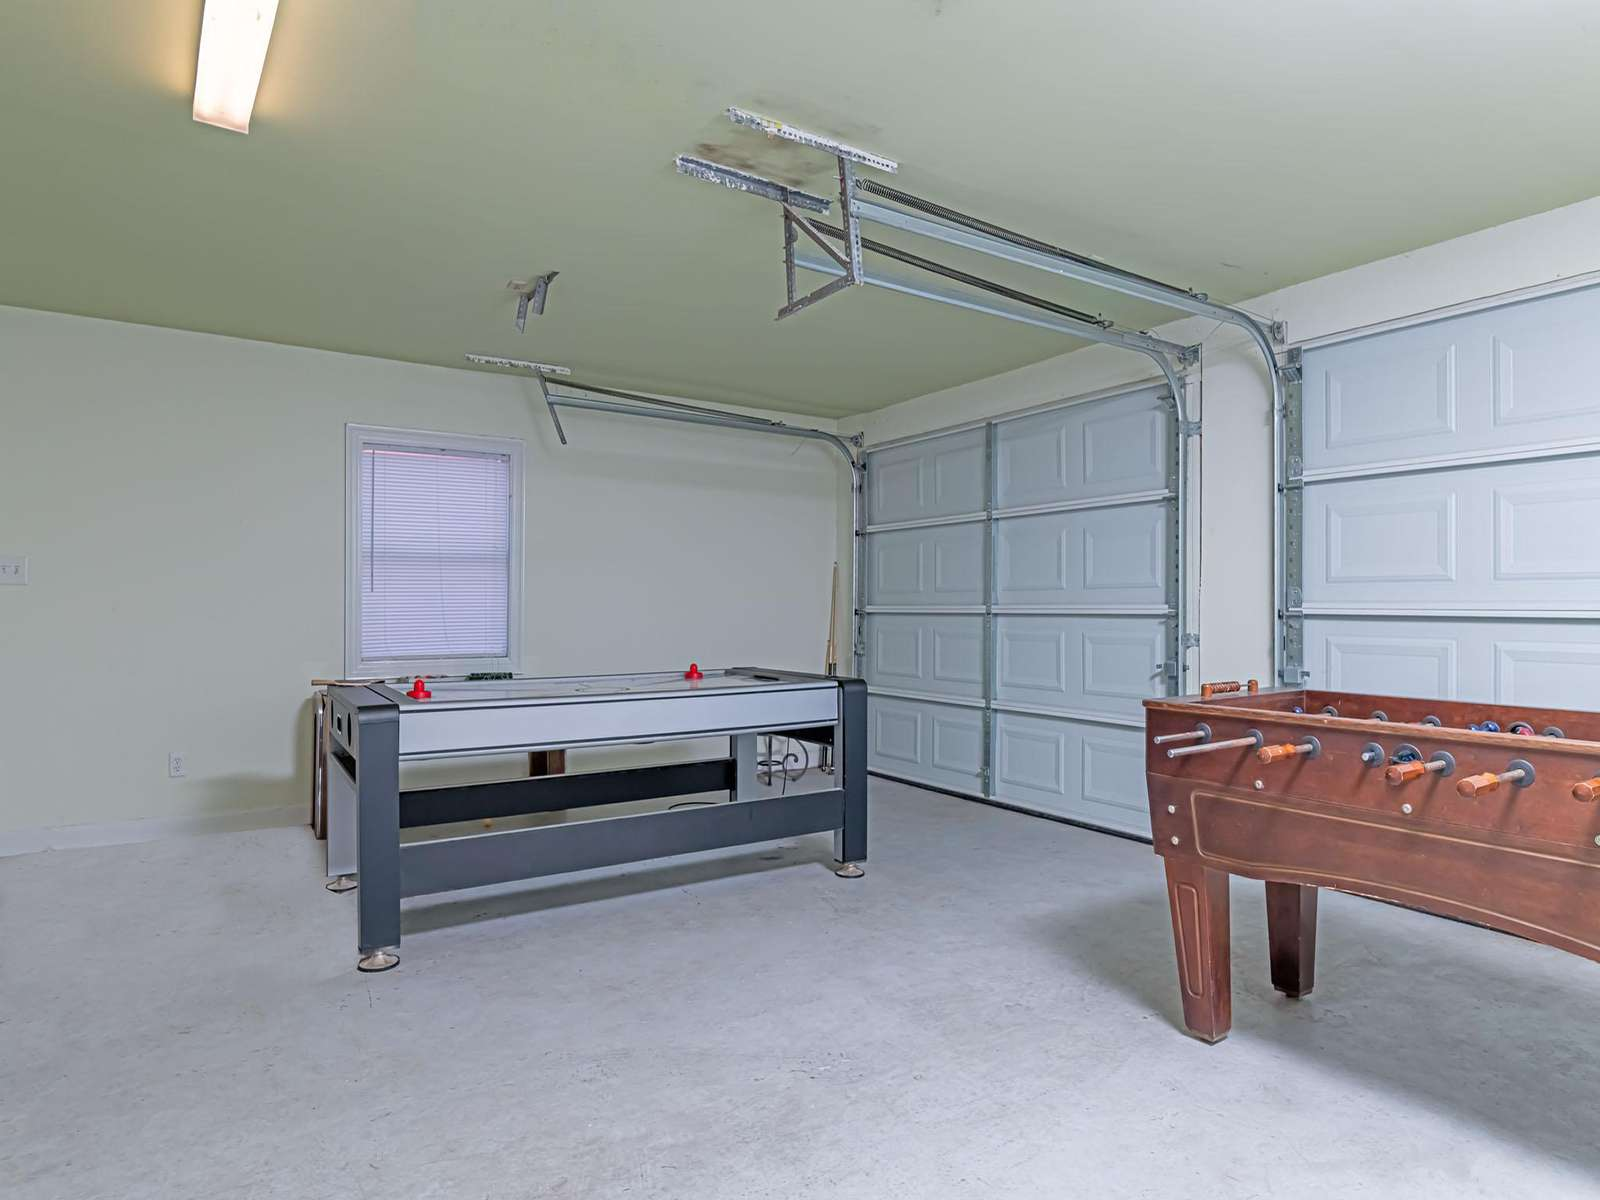 Able to move if you'd like to use the garage!